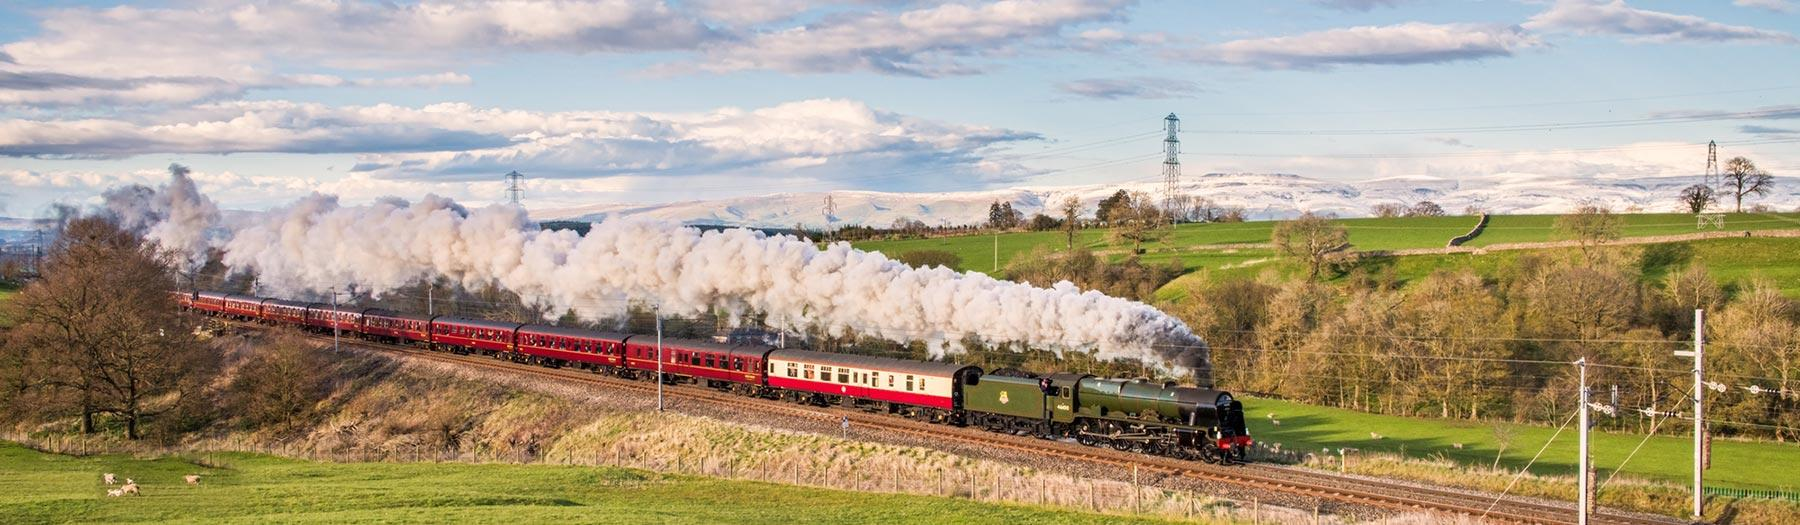 Royal Scot steam locomotive and vintage carriages passing through fields